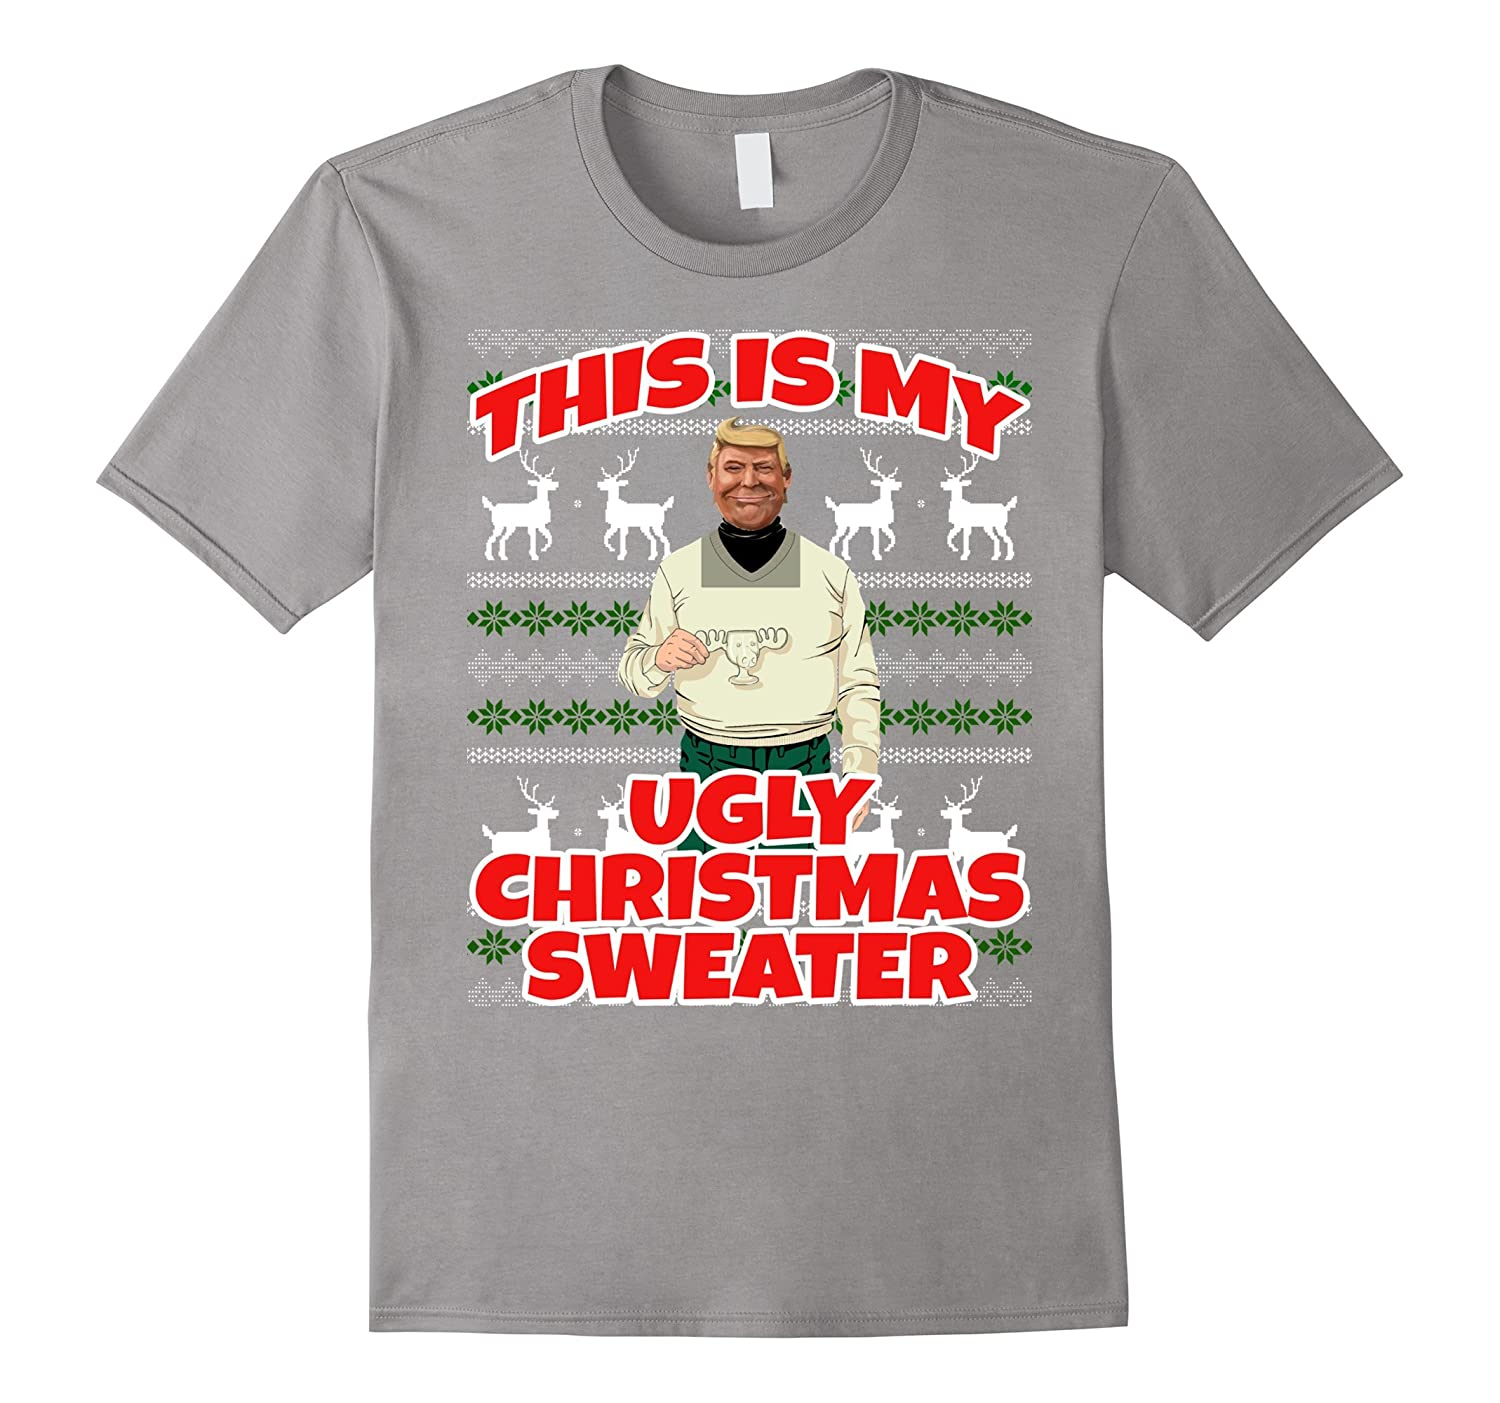 Trump Christmas Sweater.This Is My Ugly Christmas Sweater Trump Christmas T Shirt Anz